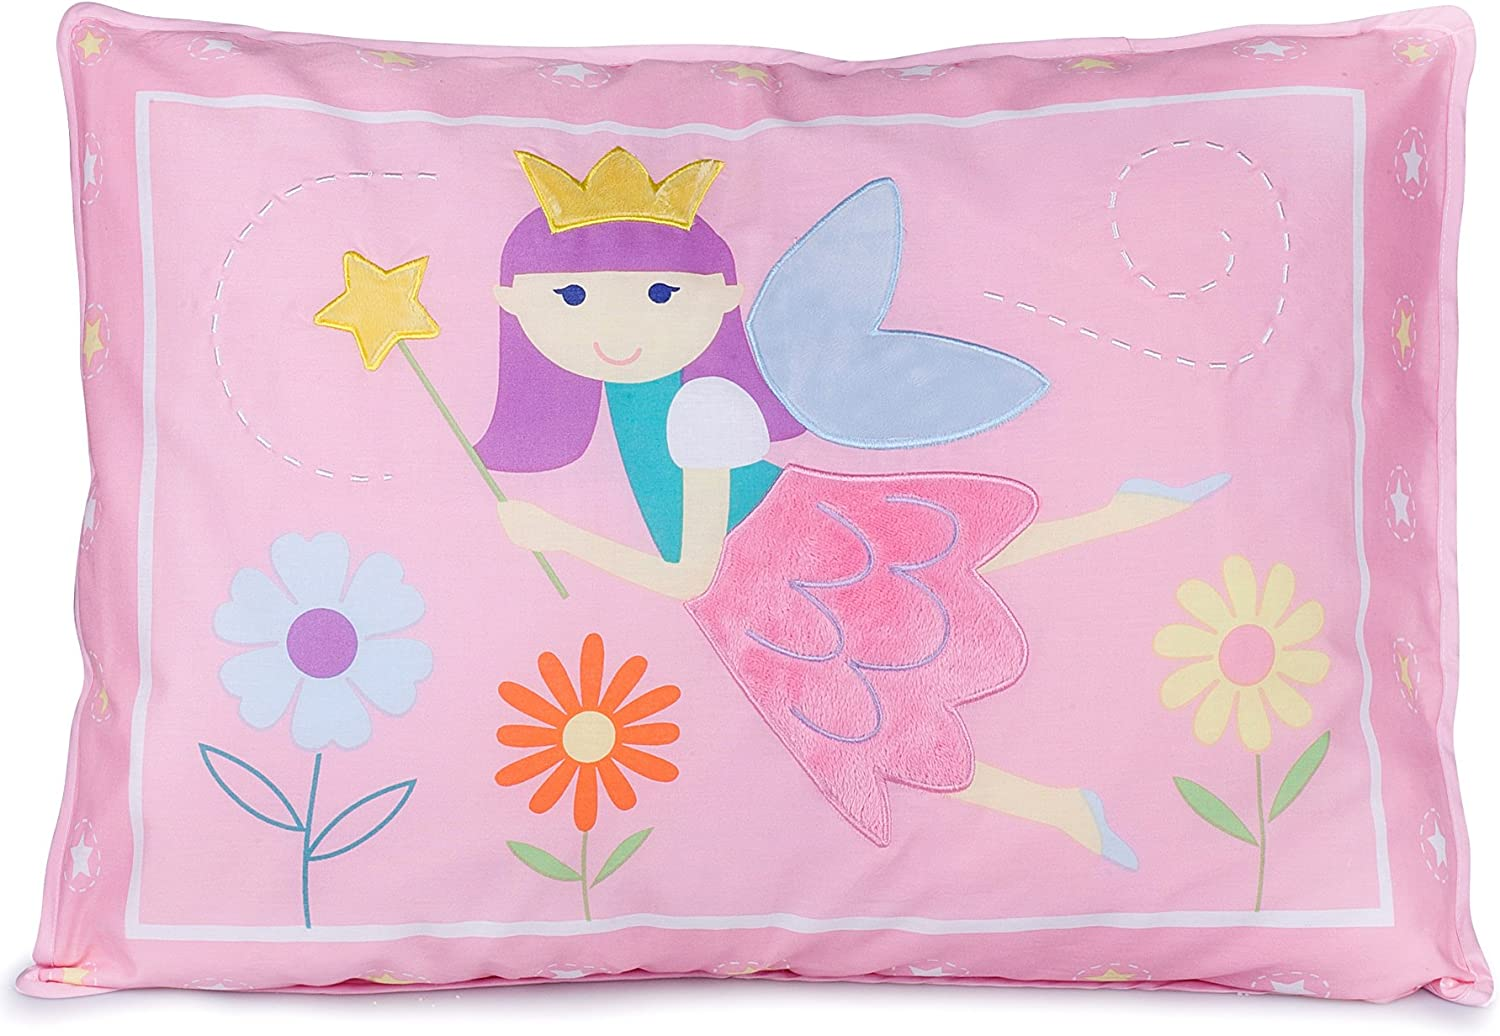 Wildkin Kids 100% Cotton Pillow Sham for Boys and Girls, Breathable Fabric, Envelope Closure, Measures 20 x 26 Inches, Fits a Standard Pillow, BPA-free, Olive Kids (Fairy Princess)